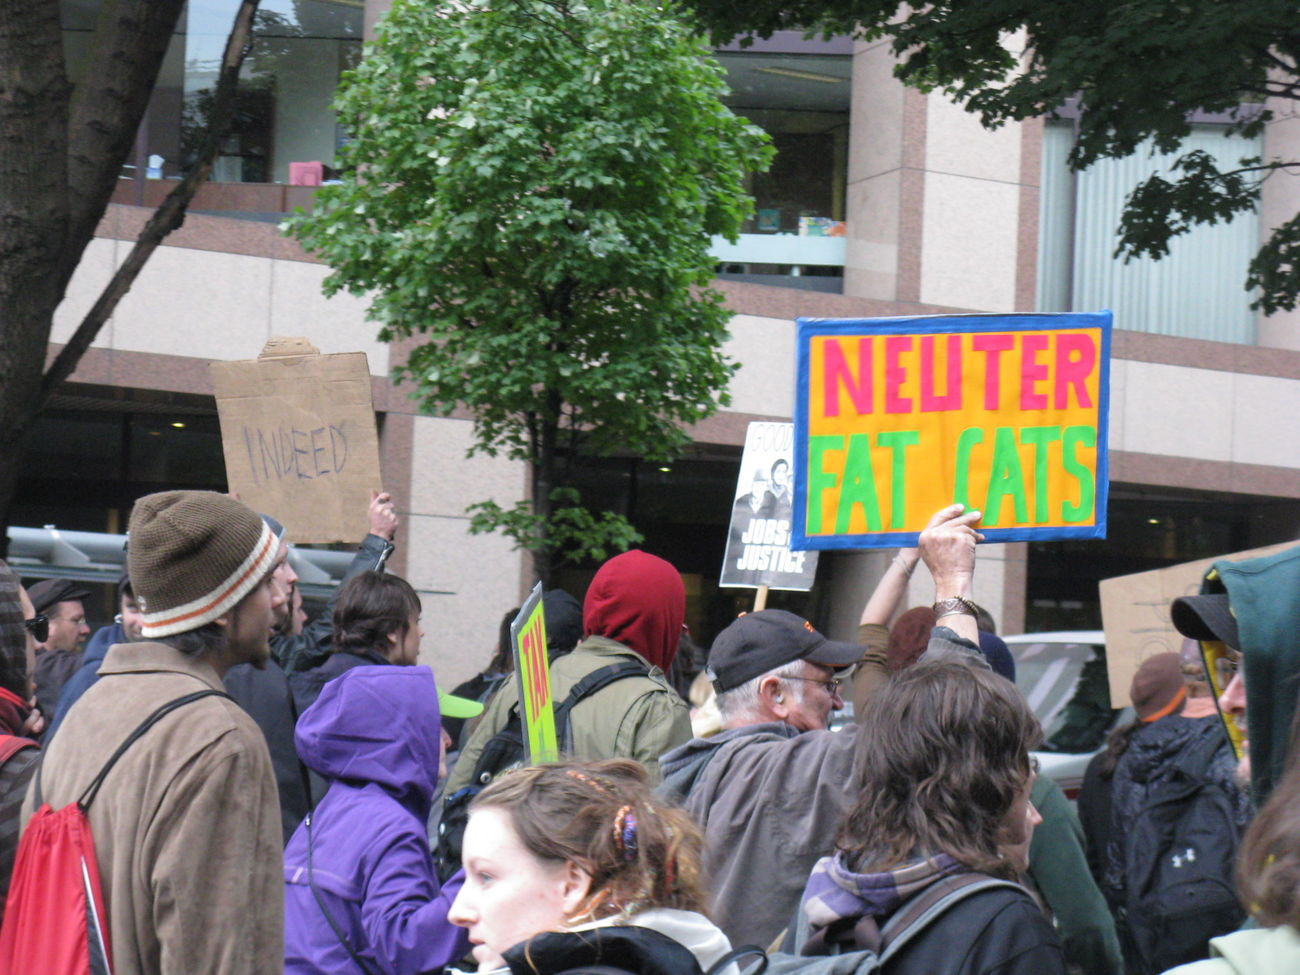 Occupy Portland, September 6, 2011 #OccupyPortland #portland Day Occupy Portland Portrait Protest Protesters Up Close Street Photography